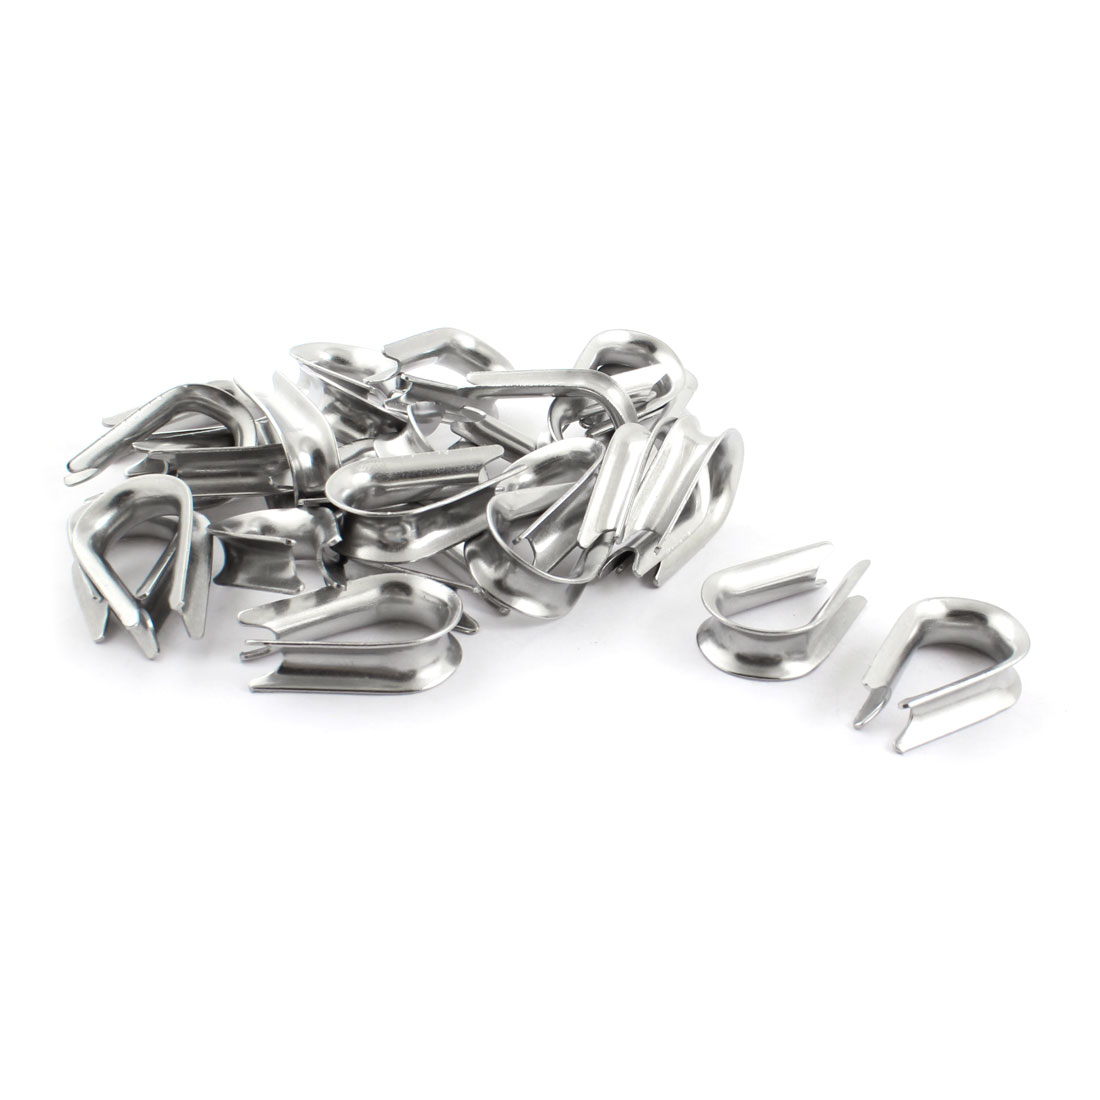 25PCS Silver Tone Stainless Steel Cable Thimbles for 10mm 2/5 Inch Wire Rope